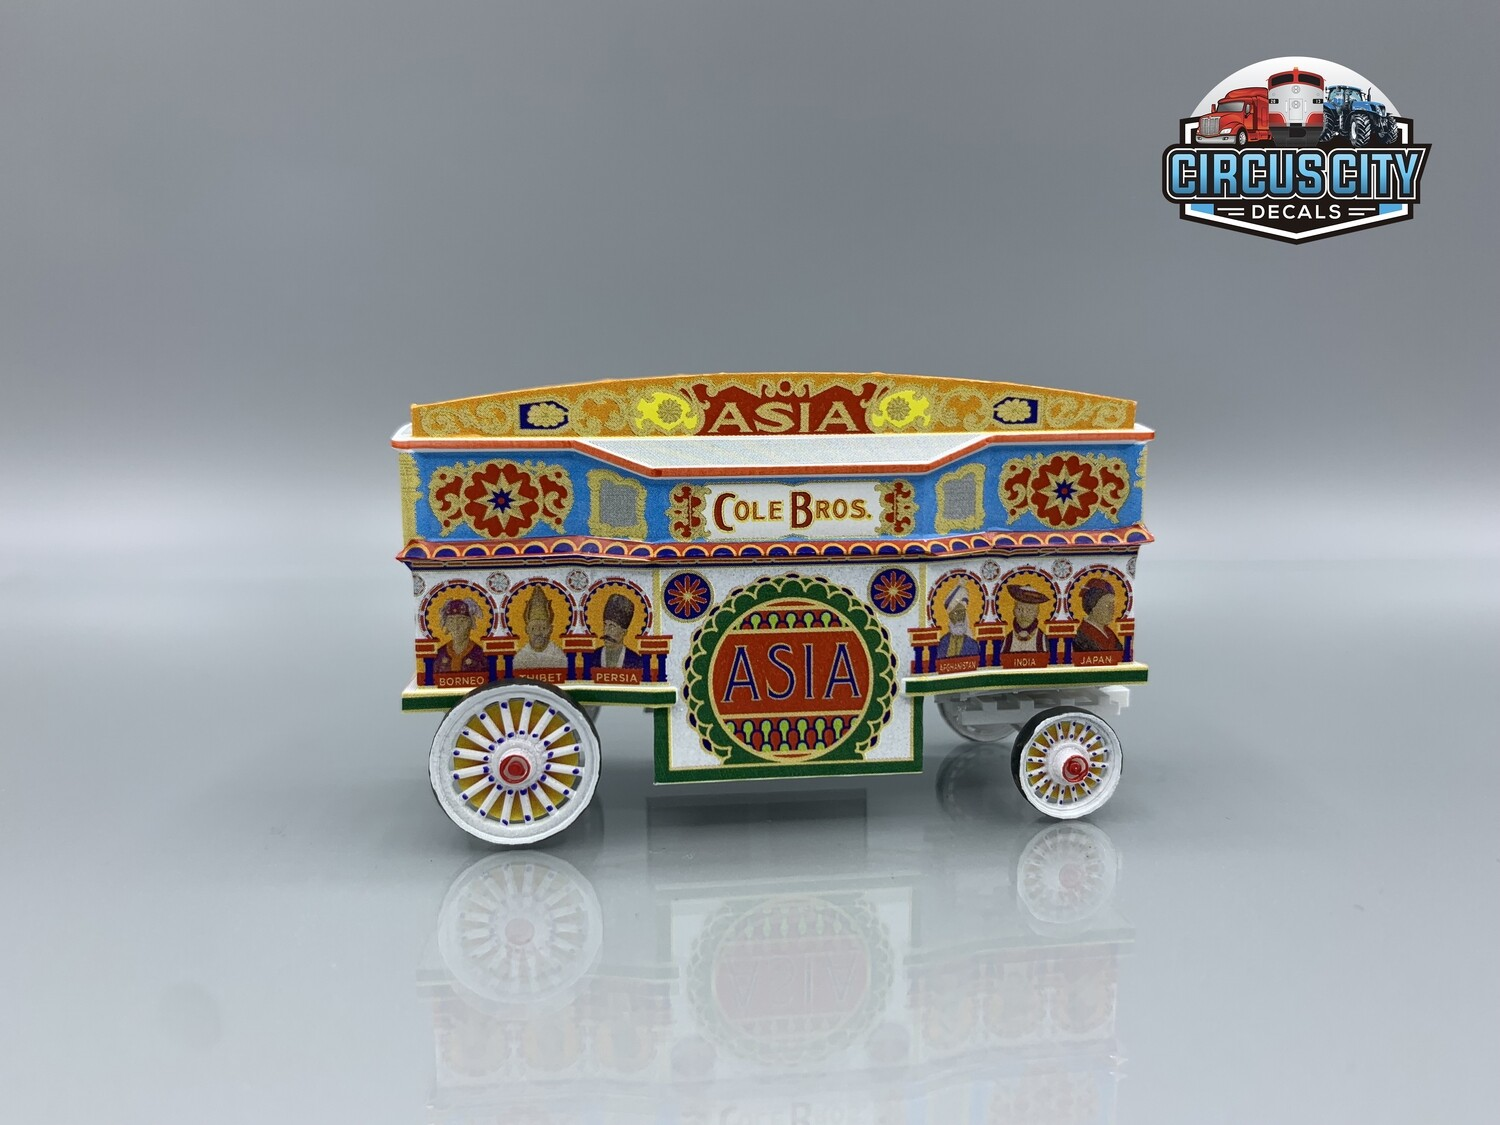 Asia Tableau Cole Brothers Circus Wagon Kit HO Scale